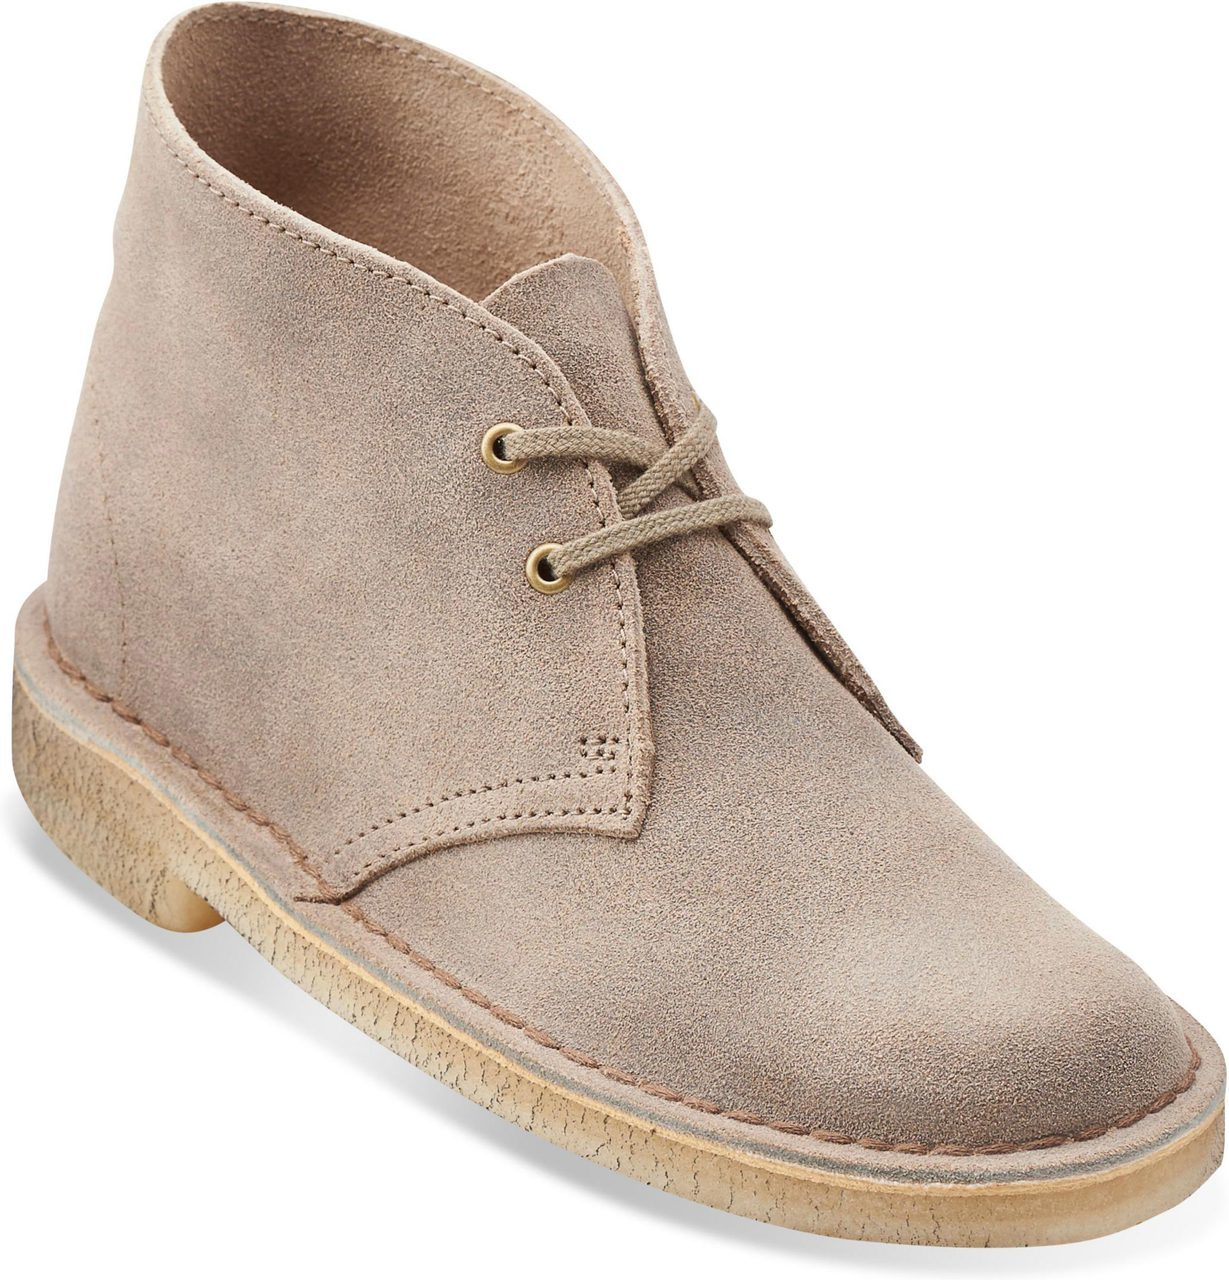 Clarks Women's Desert Boot in Taupe Distressed